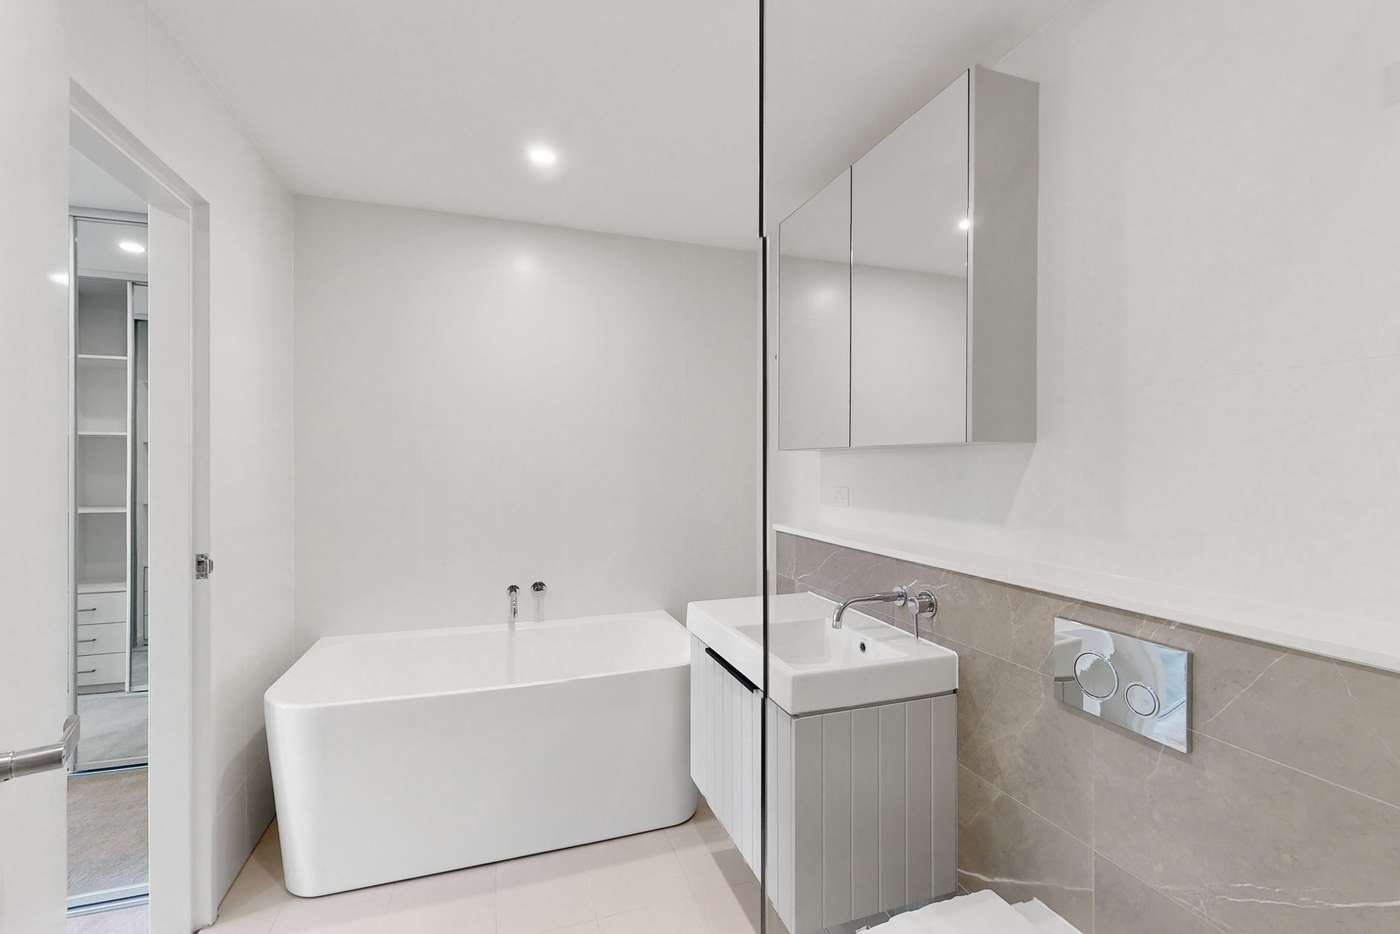 Fifth view of Homely apartment listing, 233/2 Gerbera Place, Kellyville NSW 2155